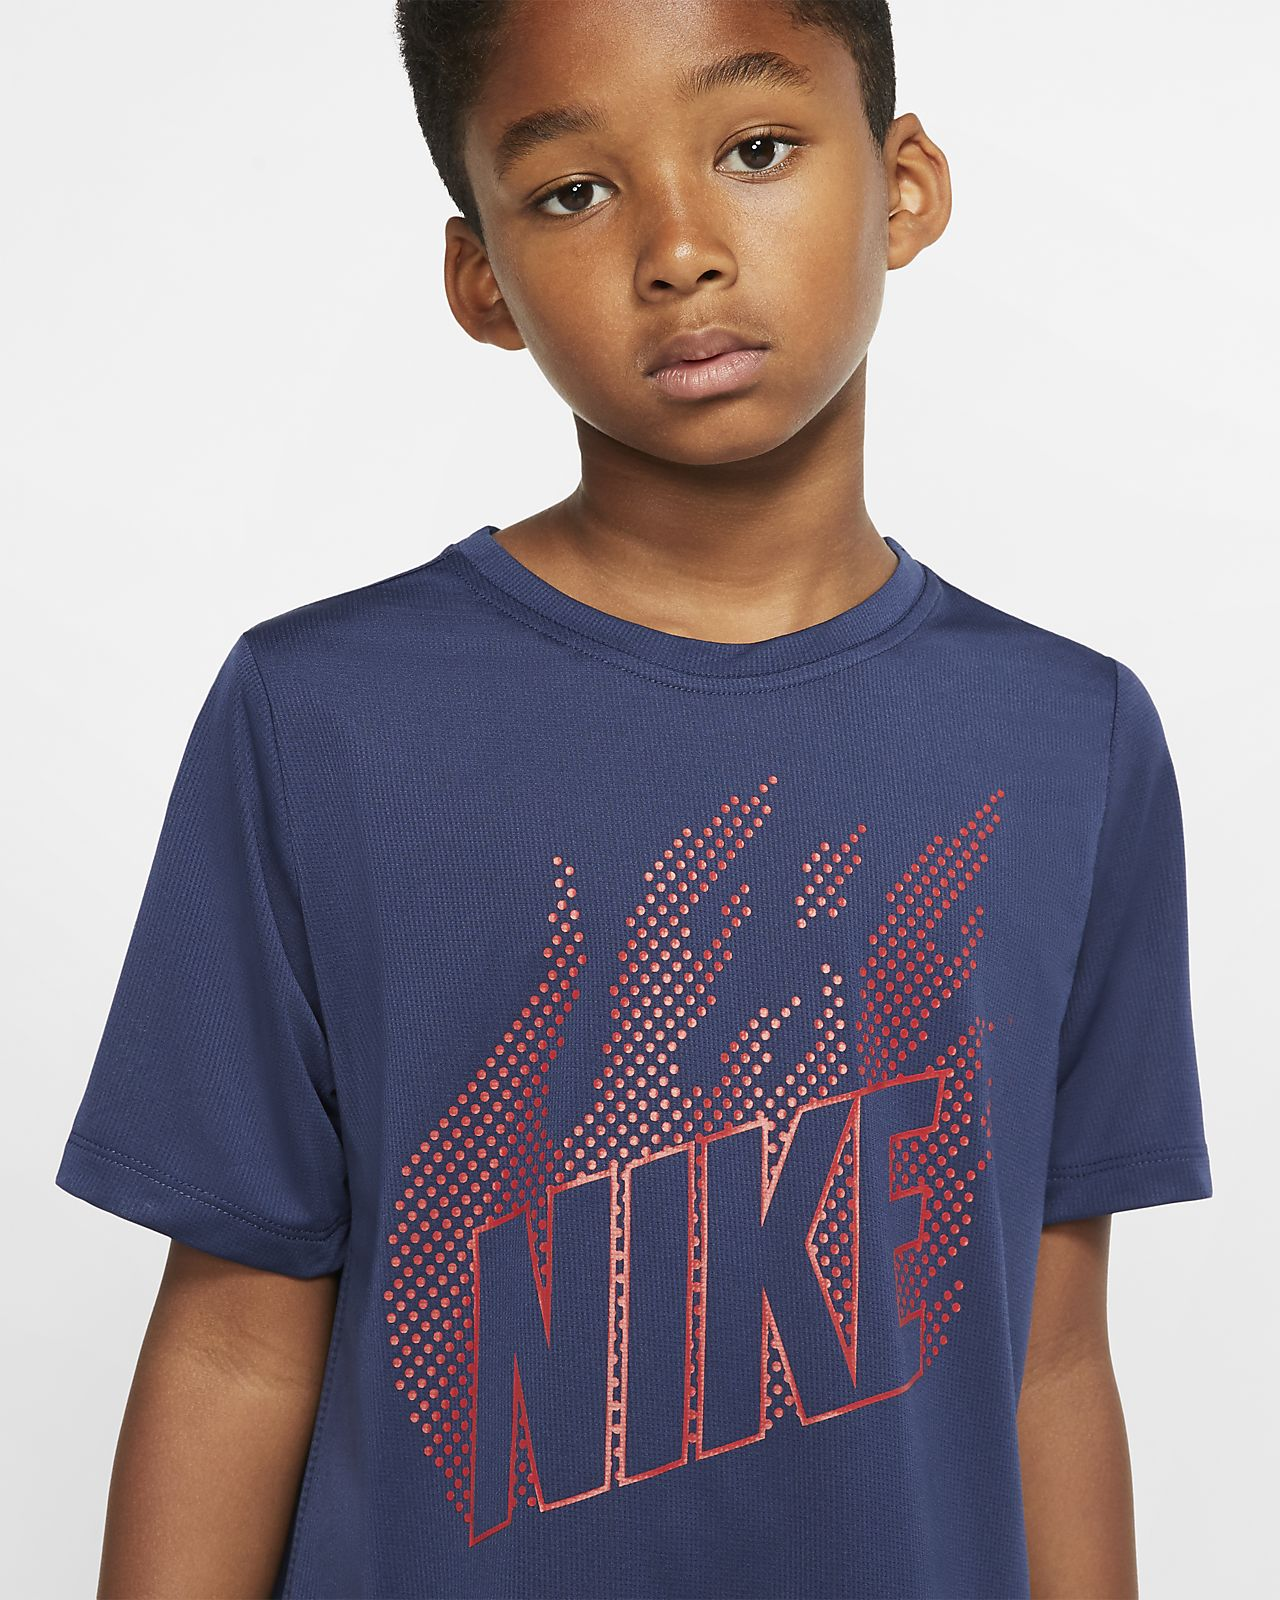 Nike Sportswear Air Max Older Kids' Short sleeve T shirt Purple from Nike on 21 Buttons